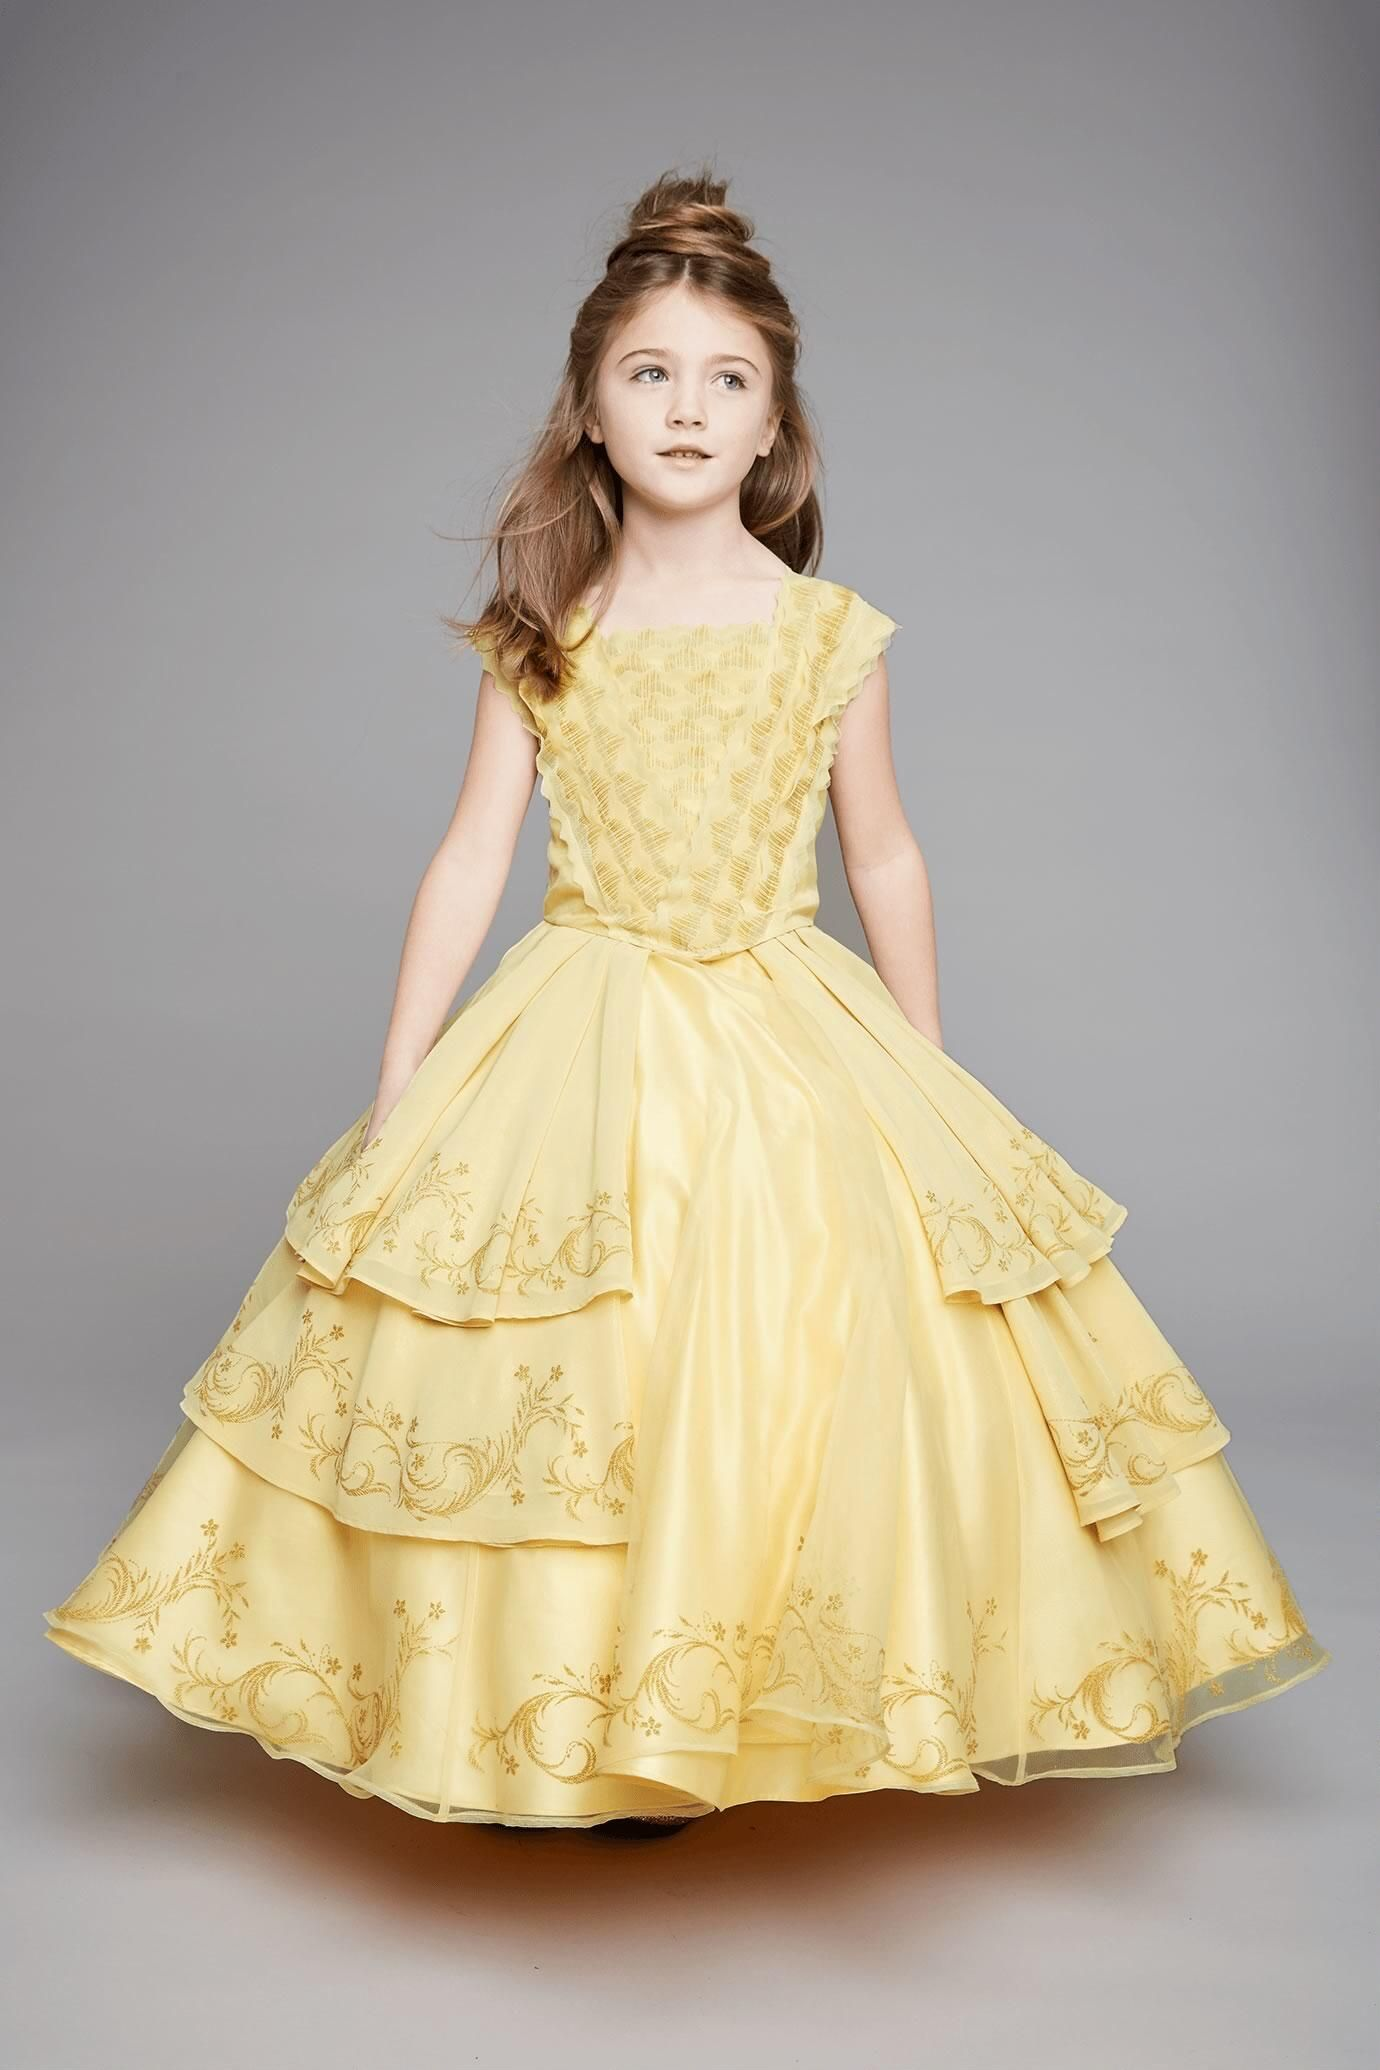 The Ultimate Collection Live-Action Belle Ball Gown | Fashion ...